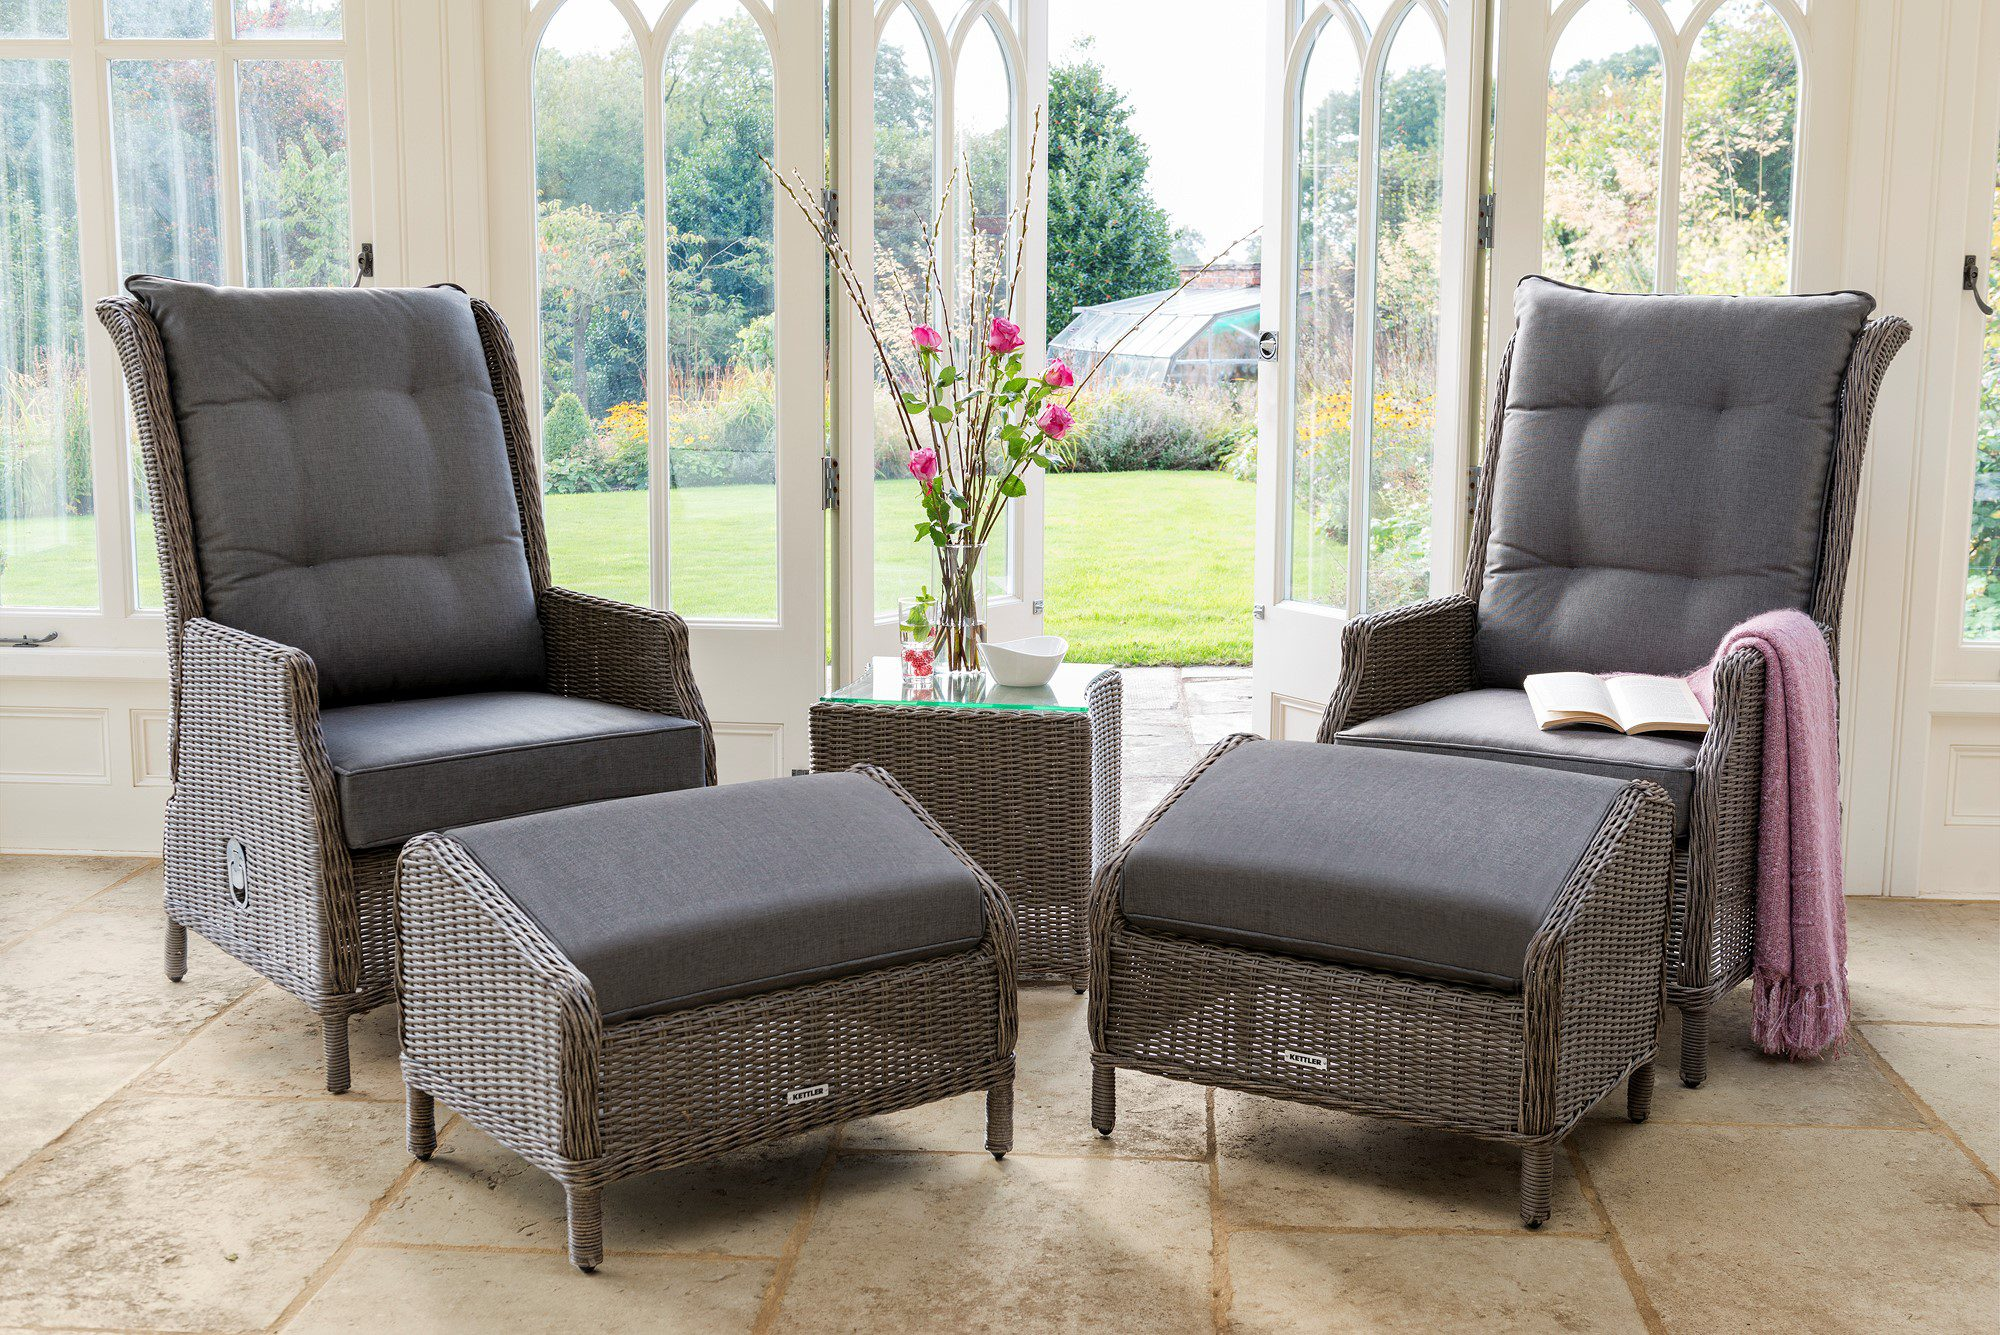 Kettler Classic Recliner Set Rattan Garden Furniture Norwich